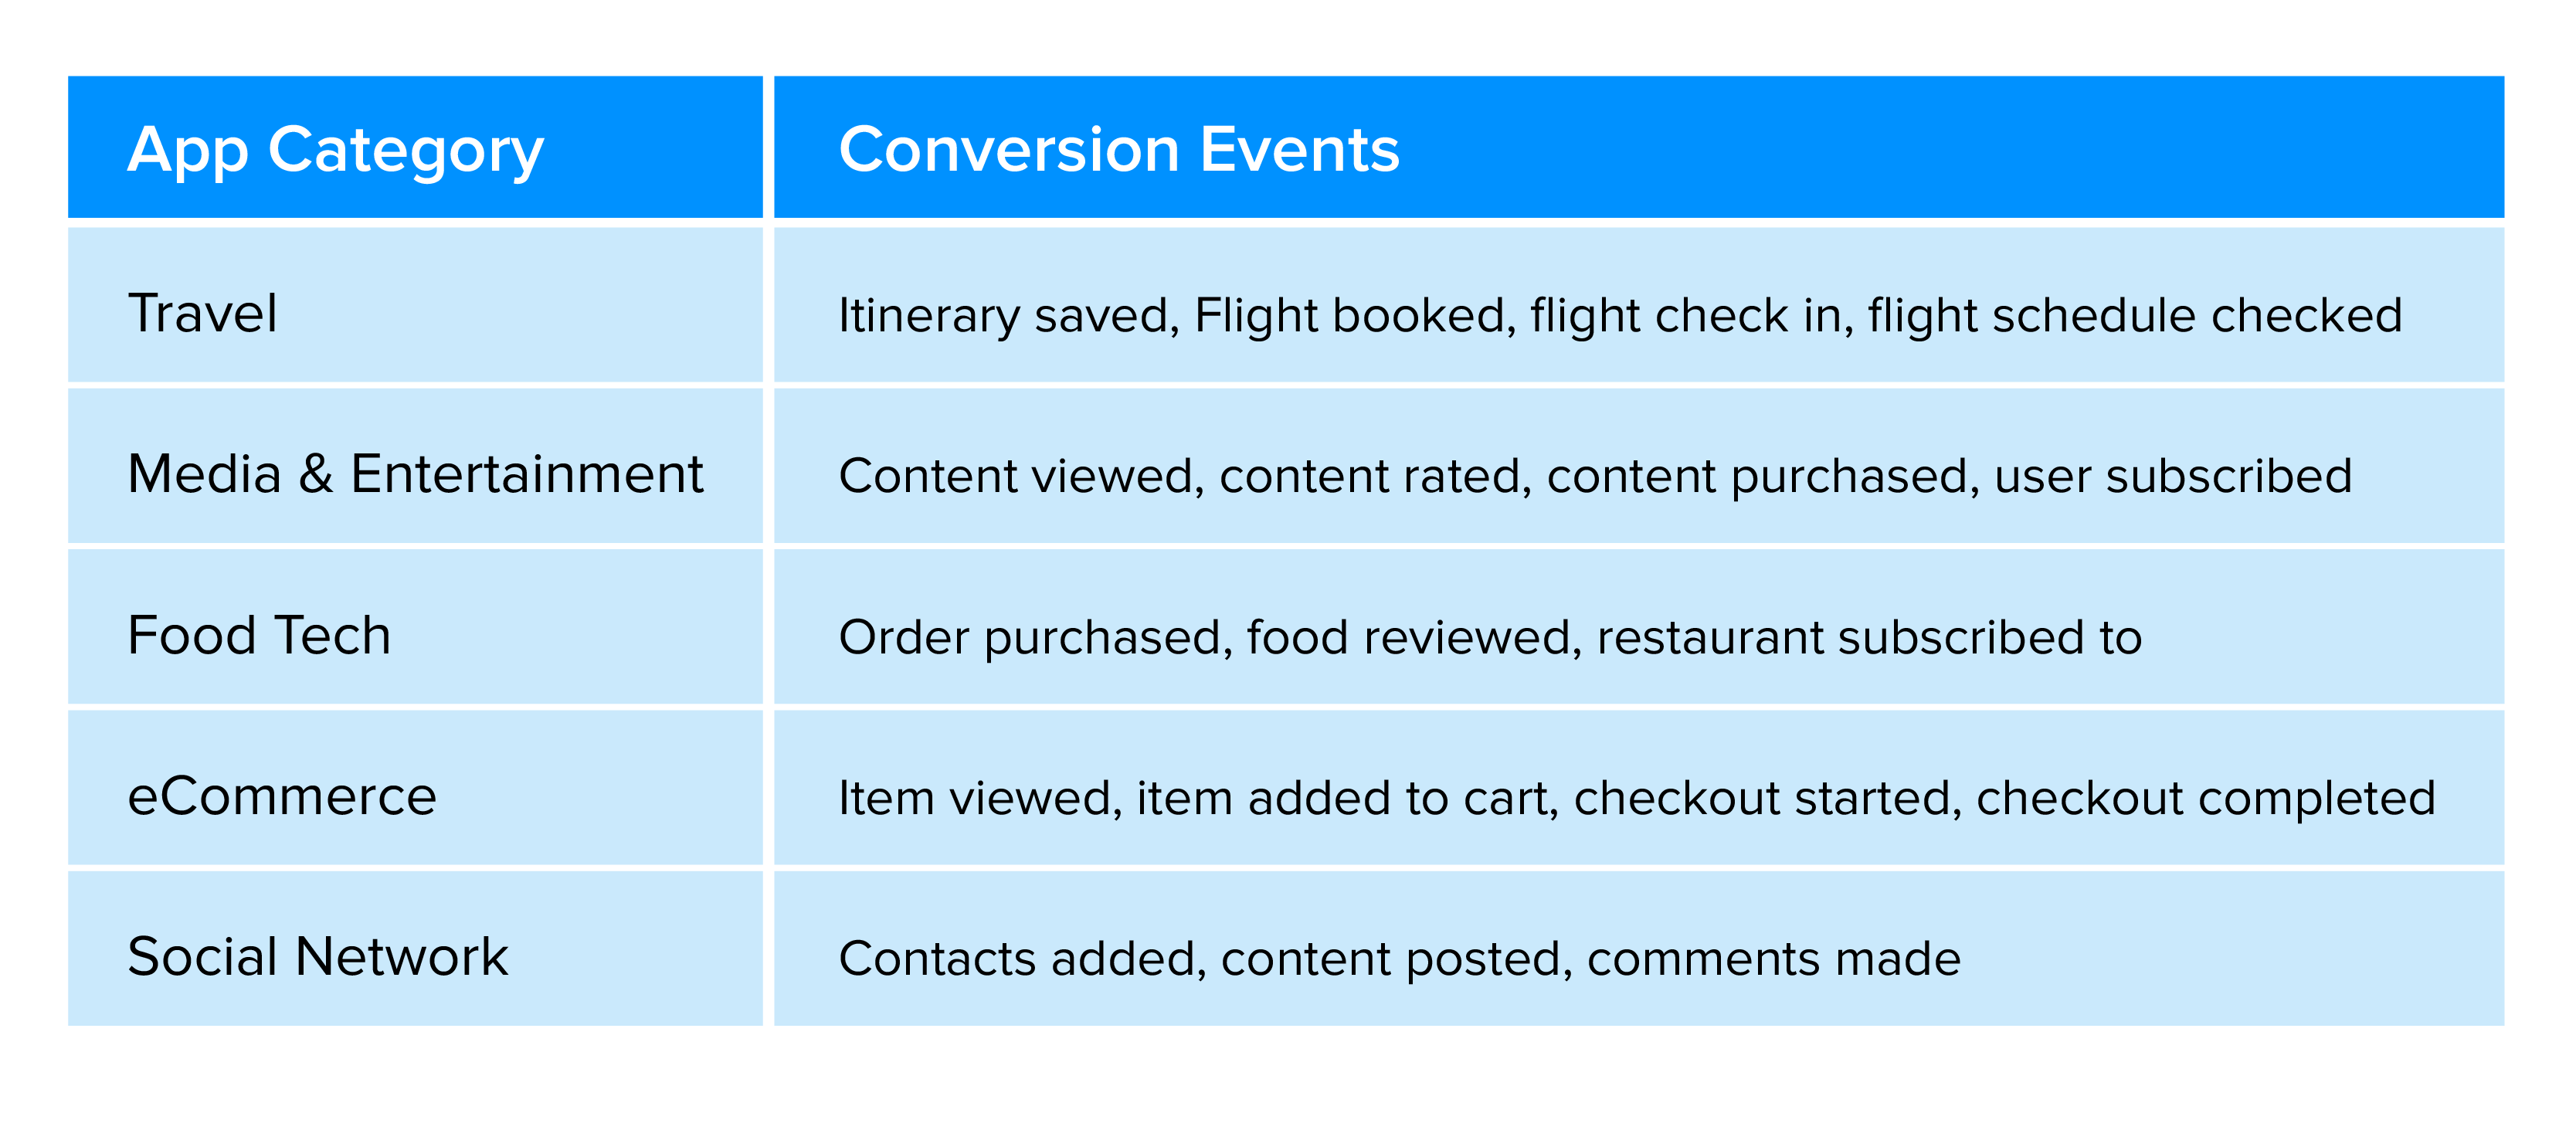 Actions for various app categories that act as conversion points